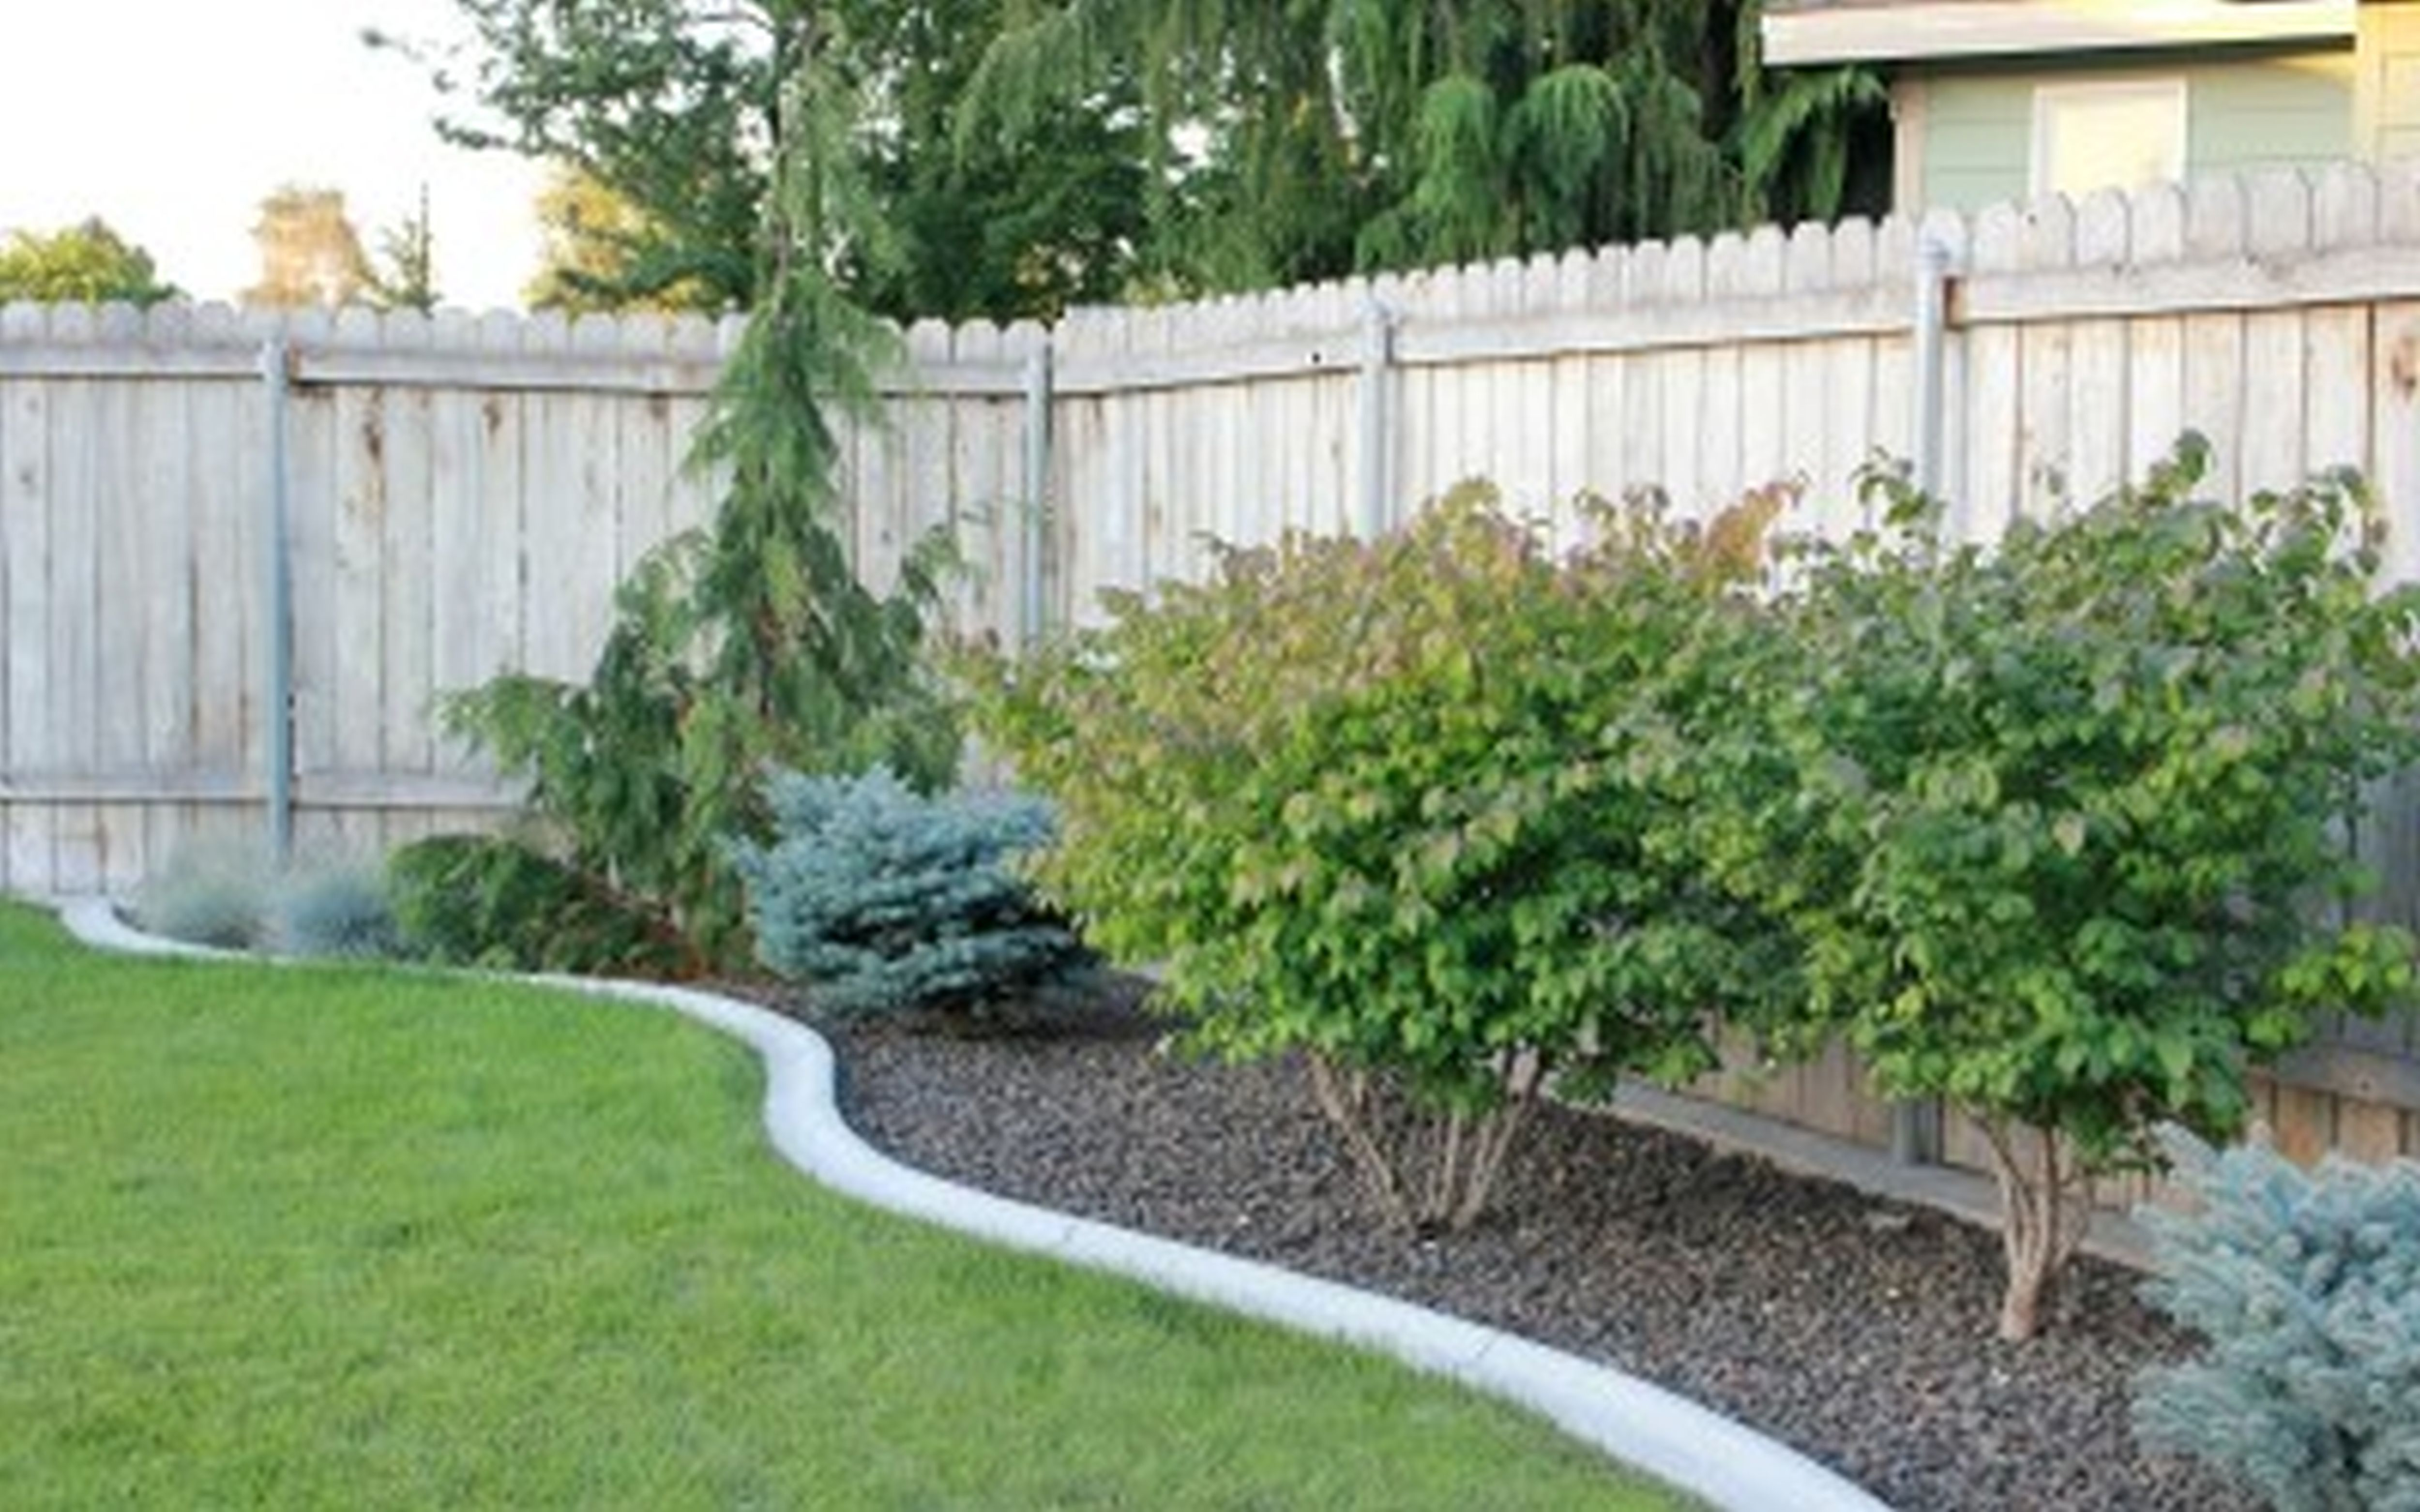 Backyard Landscape Ideas On A Budget 2018 Simple Backyard throughout 14 Awesome Ideas How to Improve Cheap Landscaping Ideas Backyard